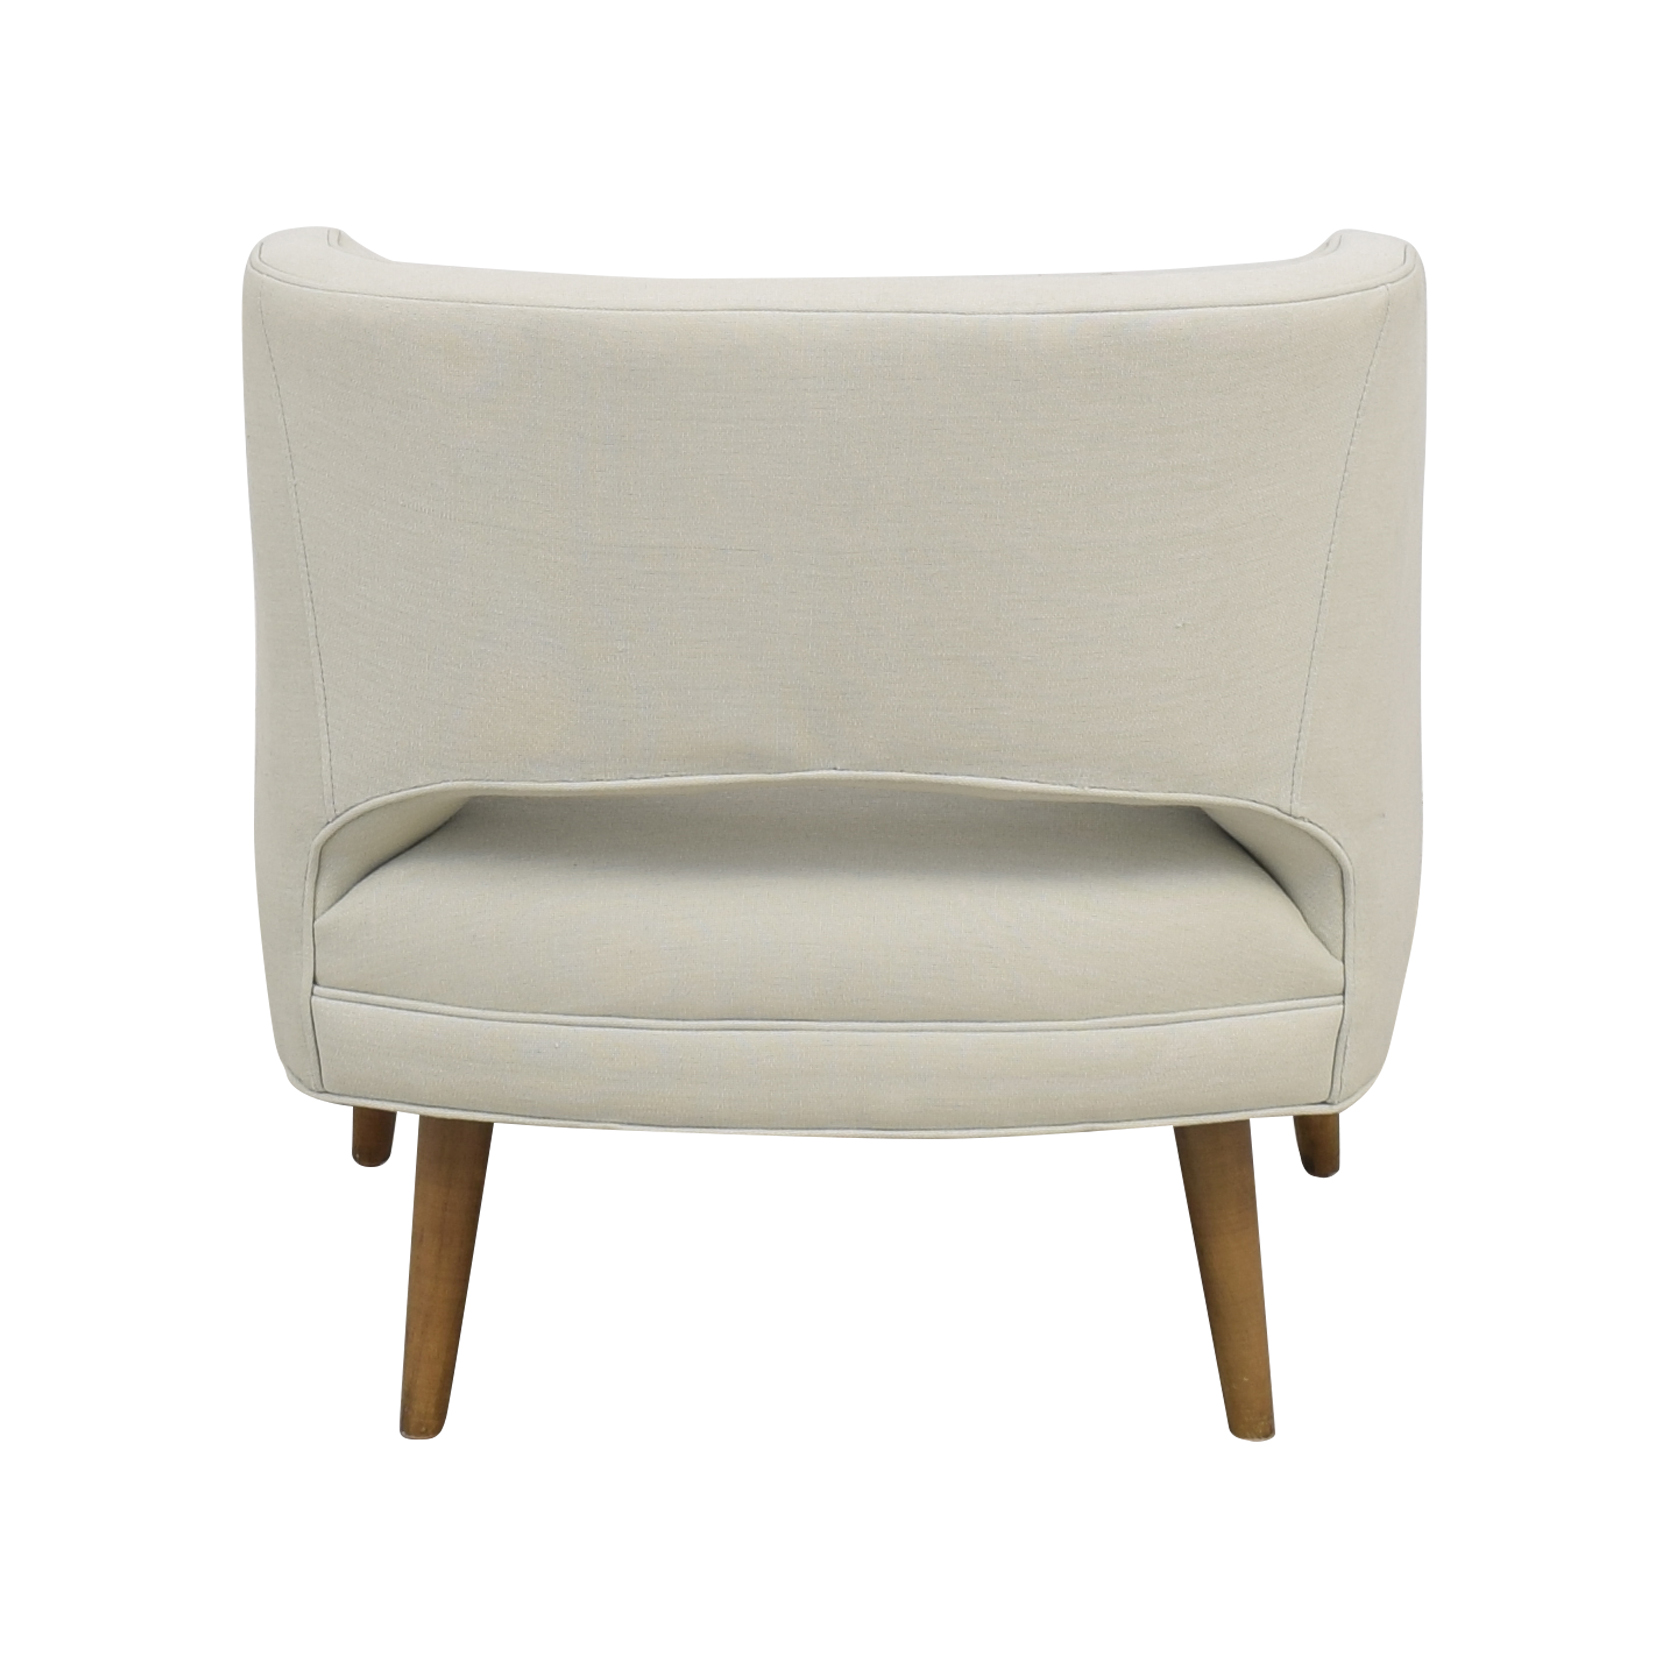 Precedent Furniture Precedent Accent Chair pa